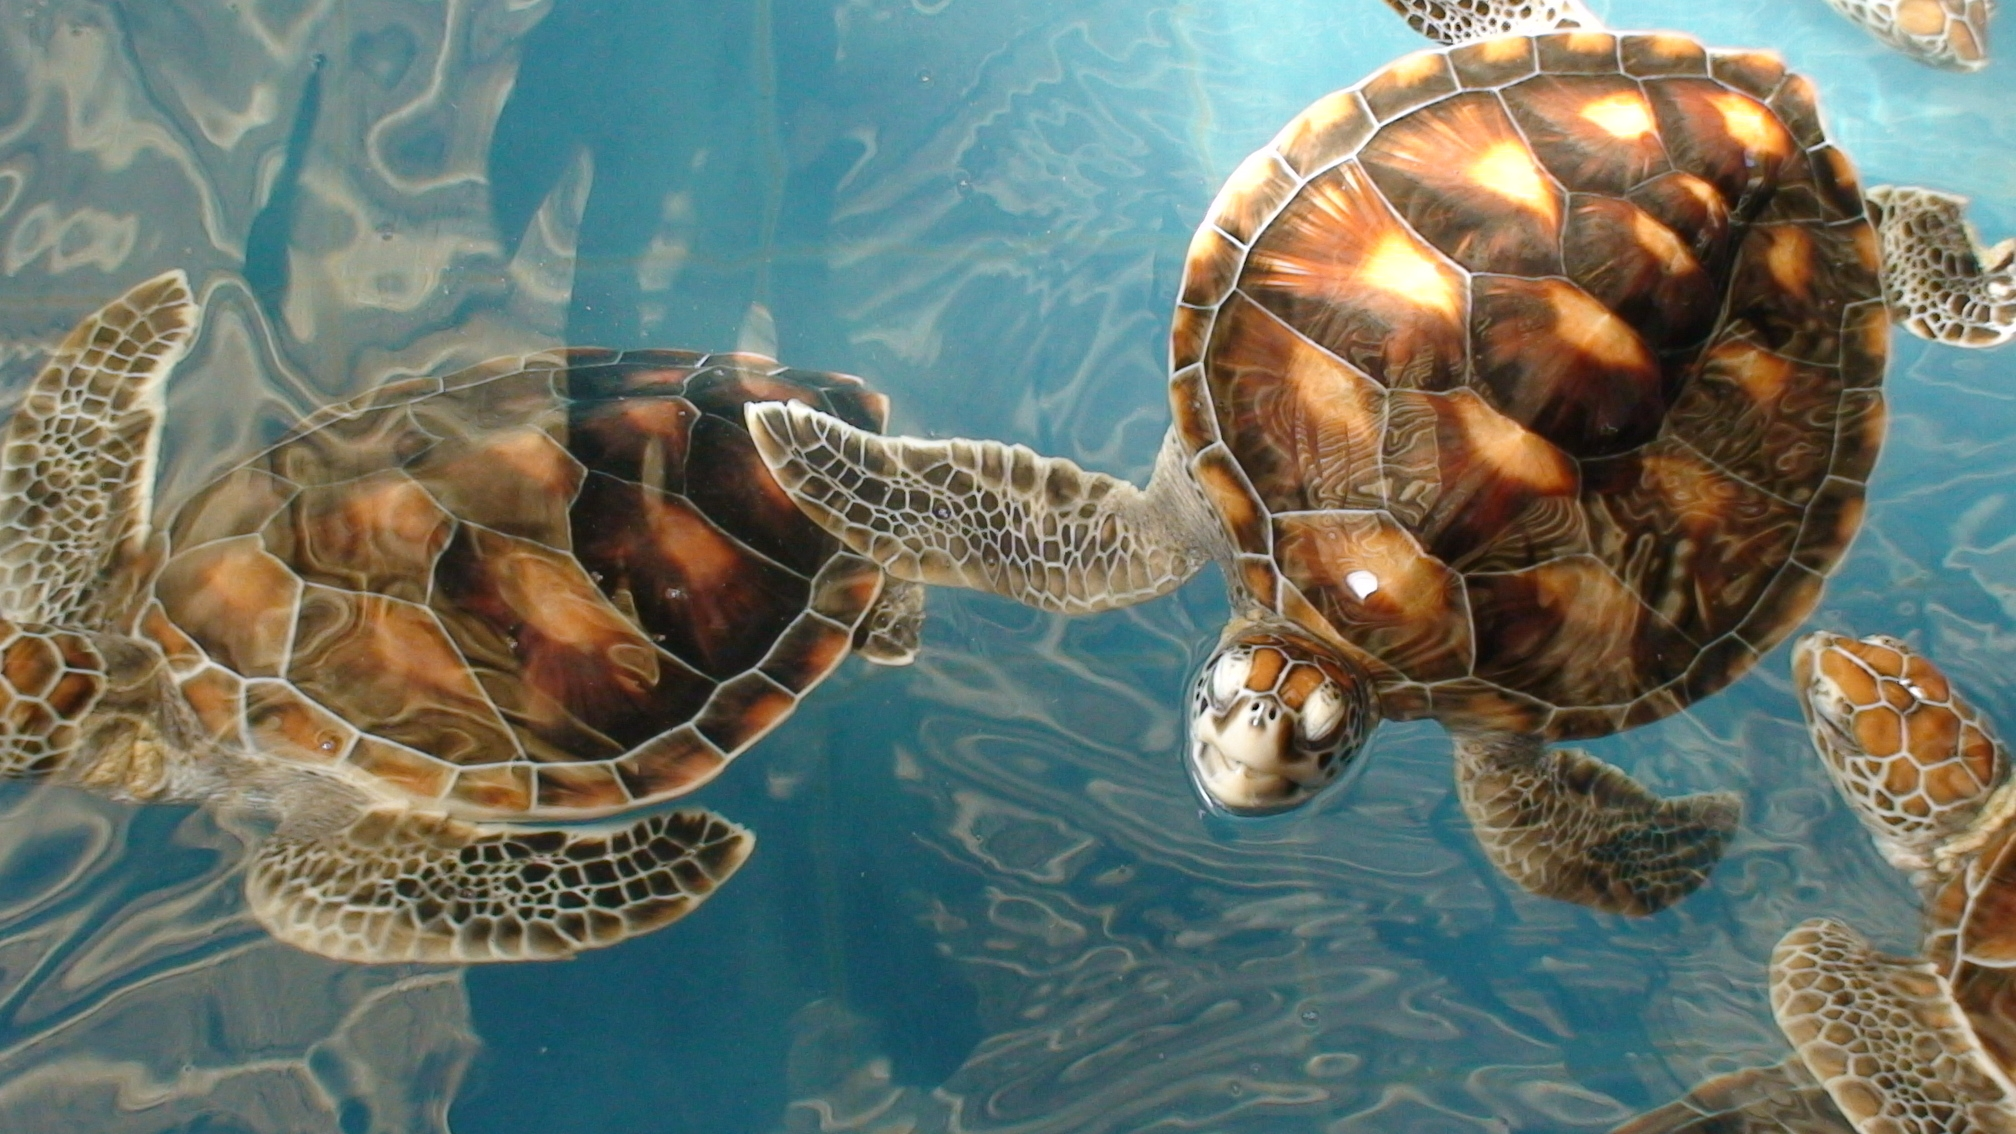 61985 download wallpaper Animals, Turtles, Sea, Underwater World, Lot screensavers and pictures for free